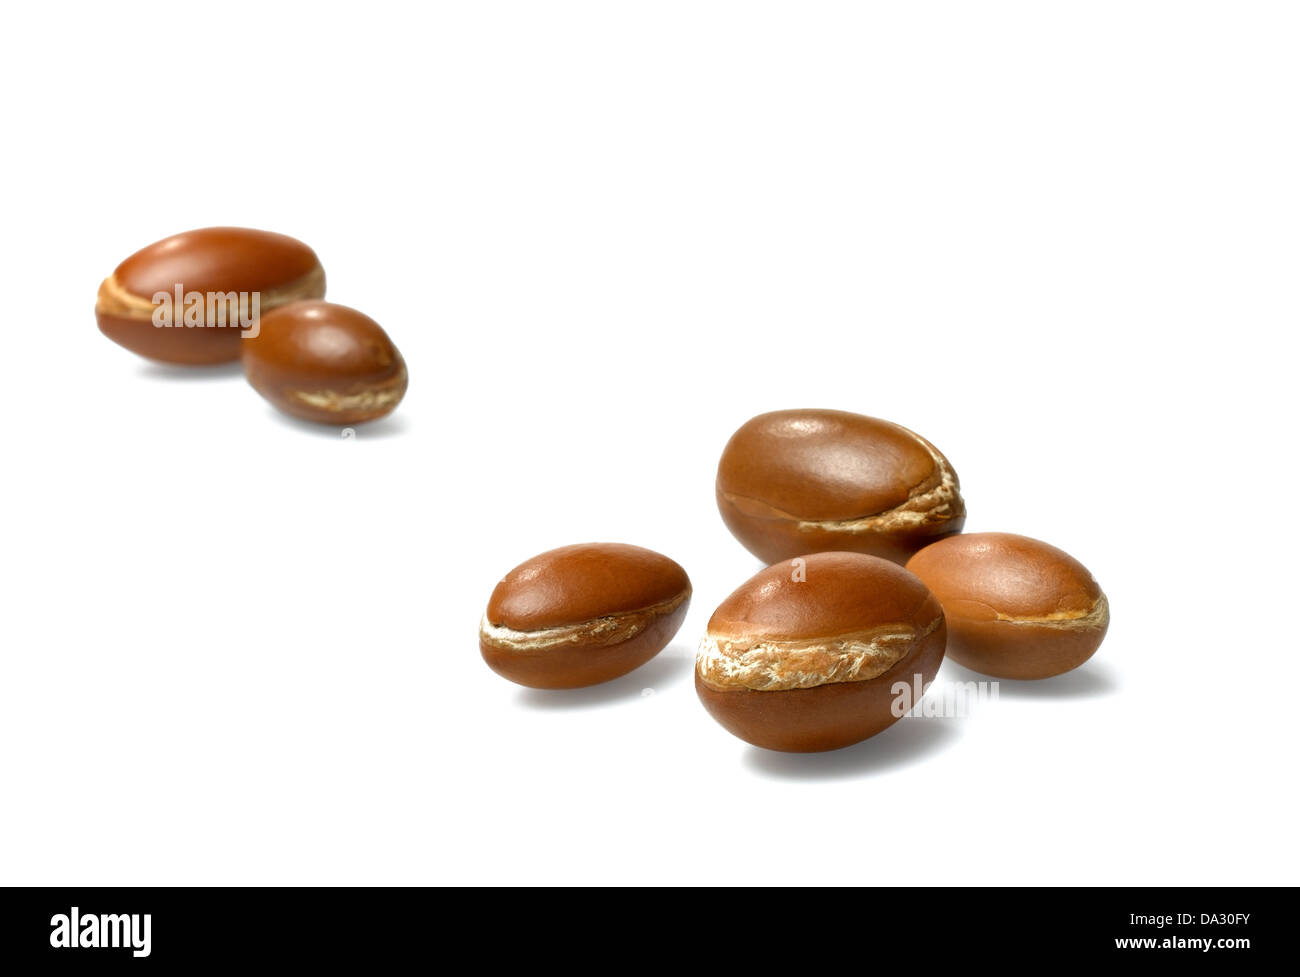 argan nuts - Stock Image